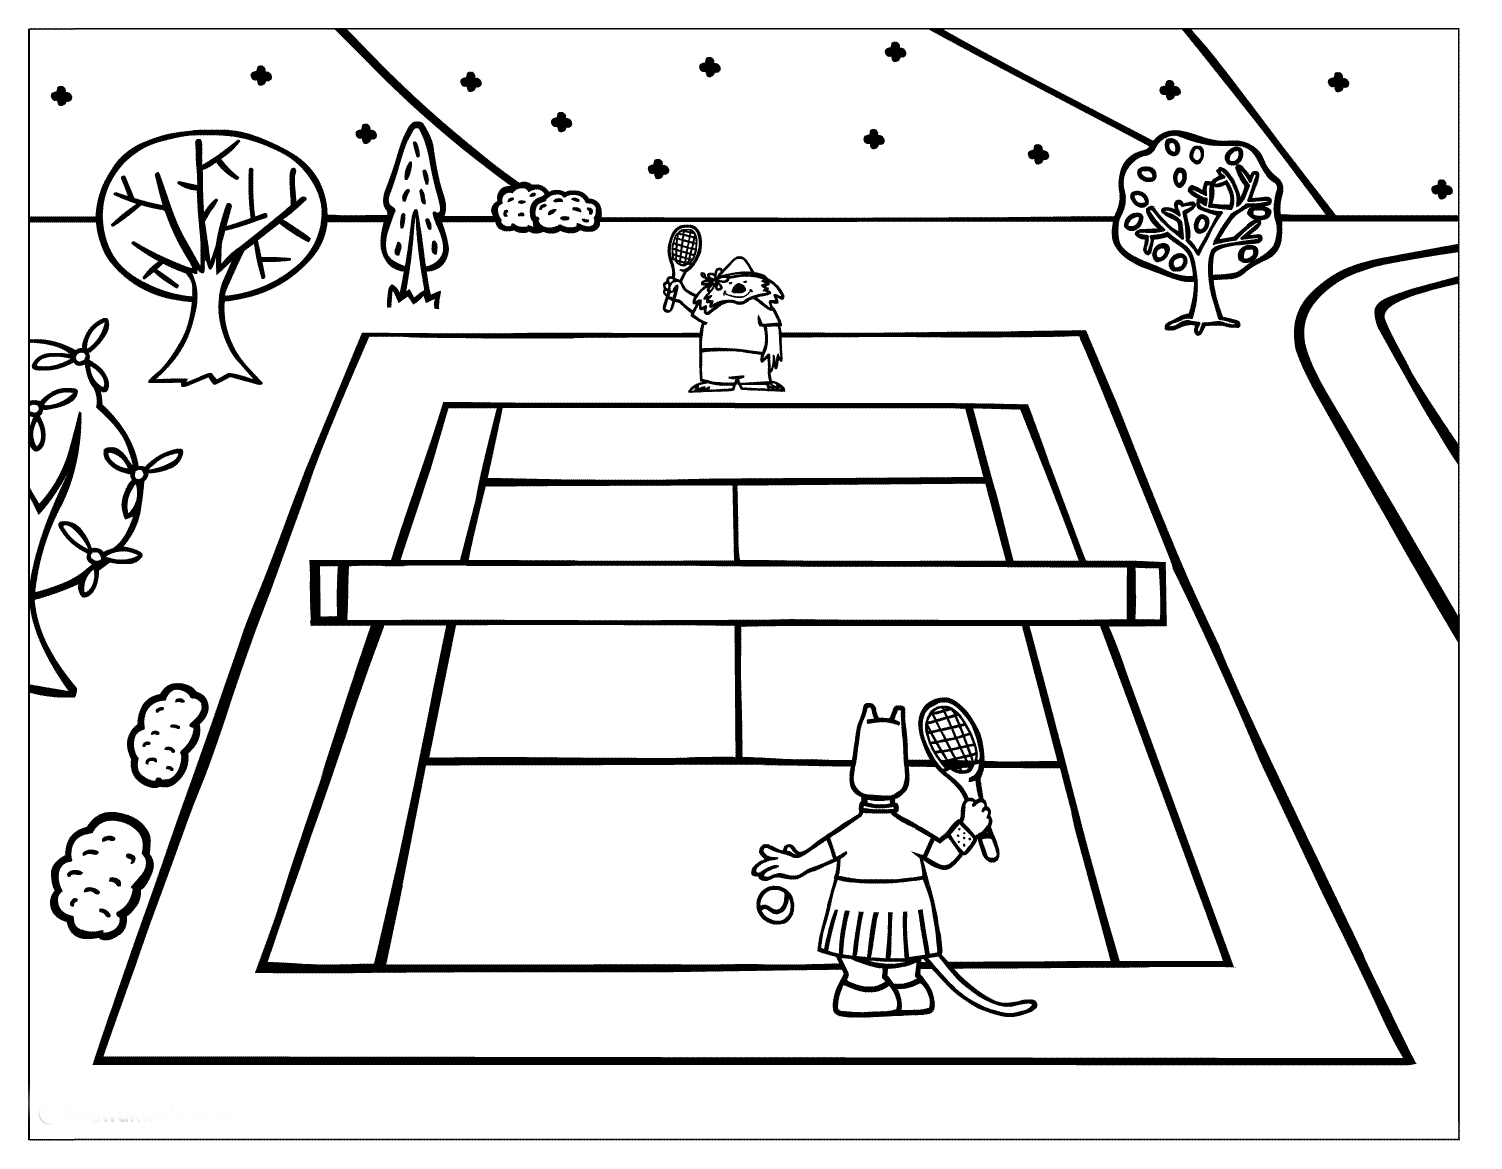 Table Tennis Worksheets